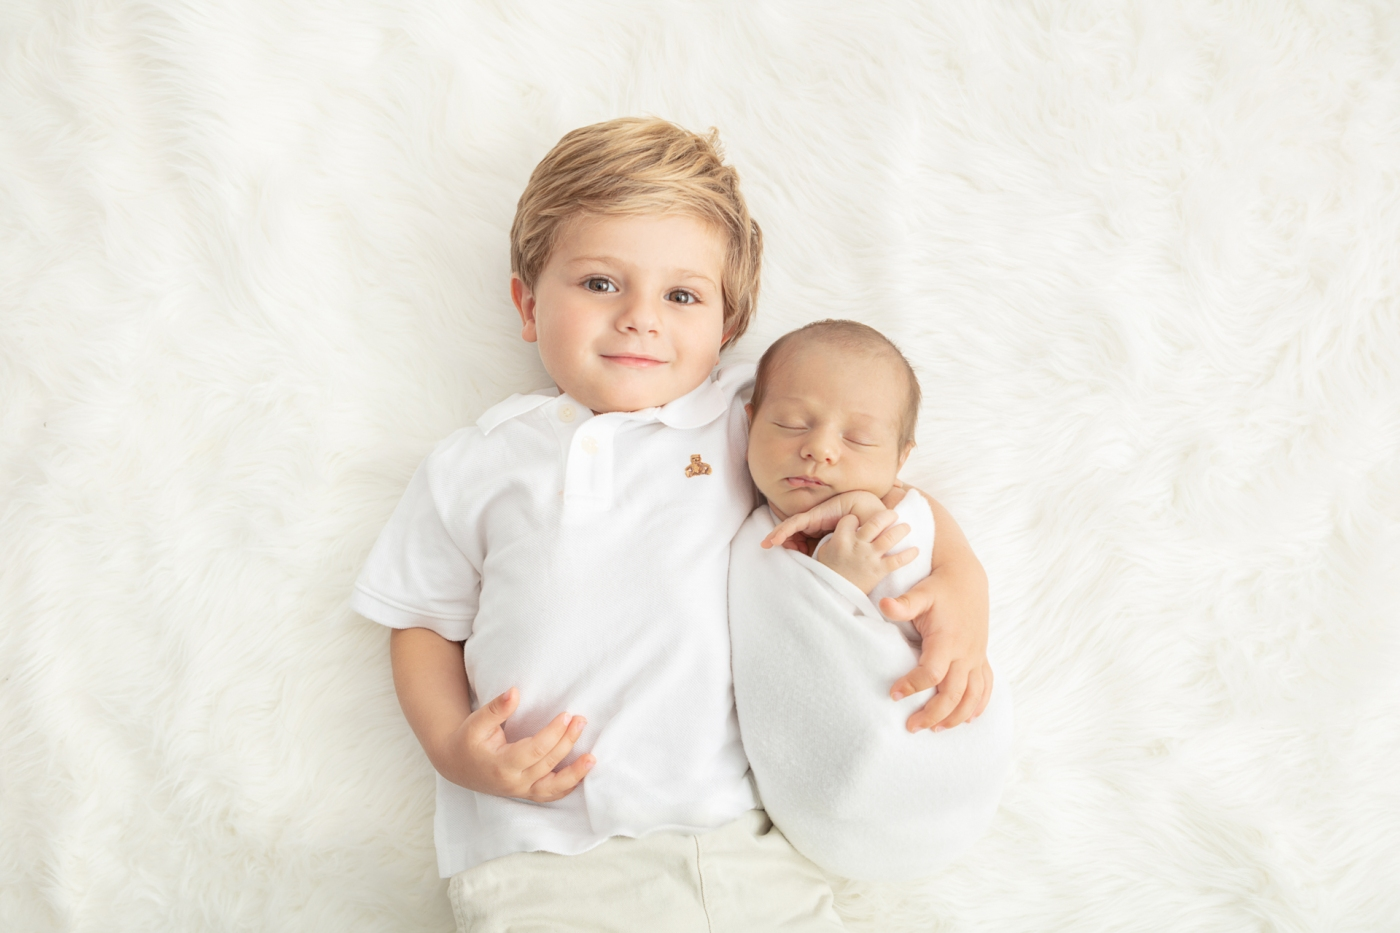 proud toddler brother with his arm around his new baby brother